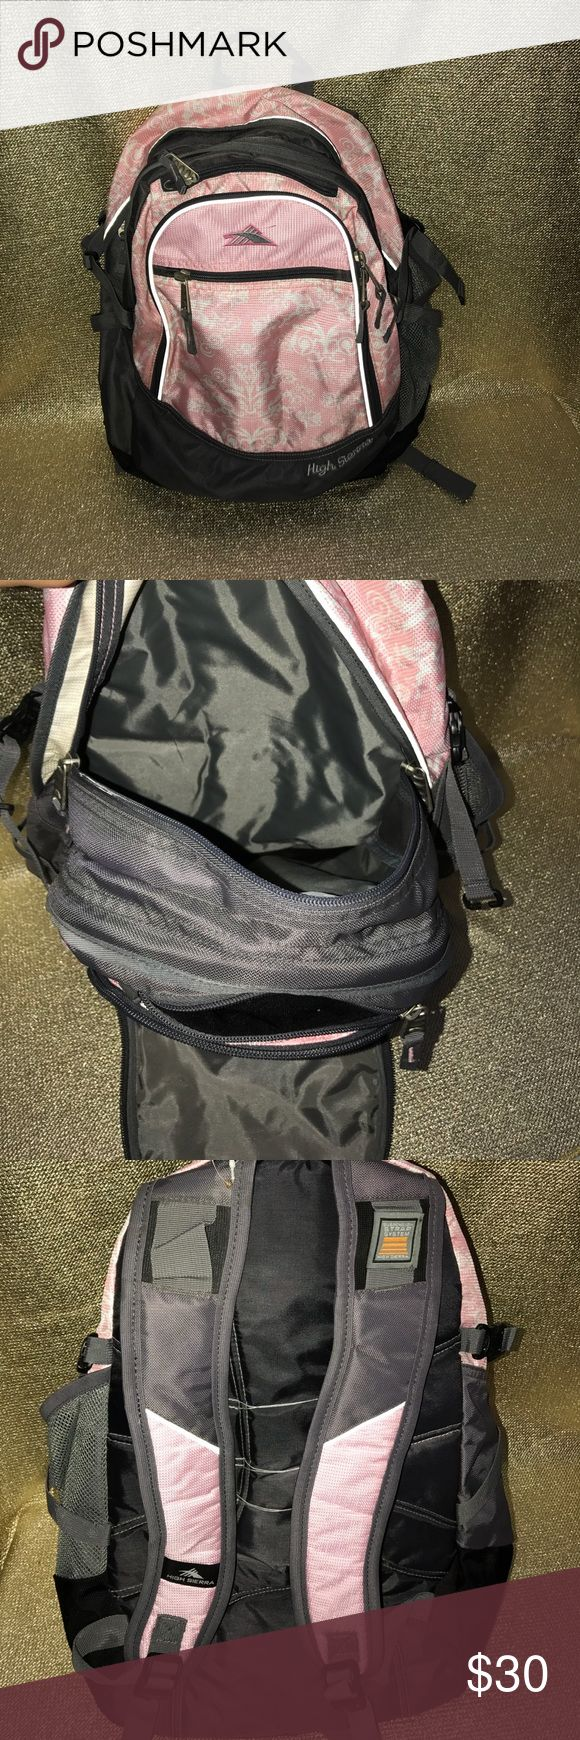 High Sierra backpack (NEW WITHOUT TAG) New without tags High Sierra Bags Backpacks